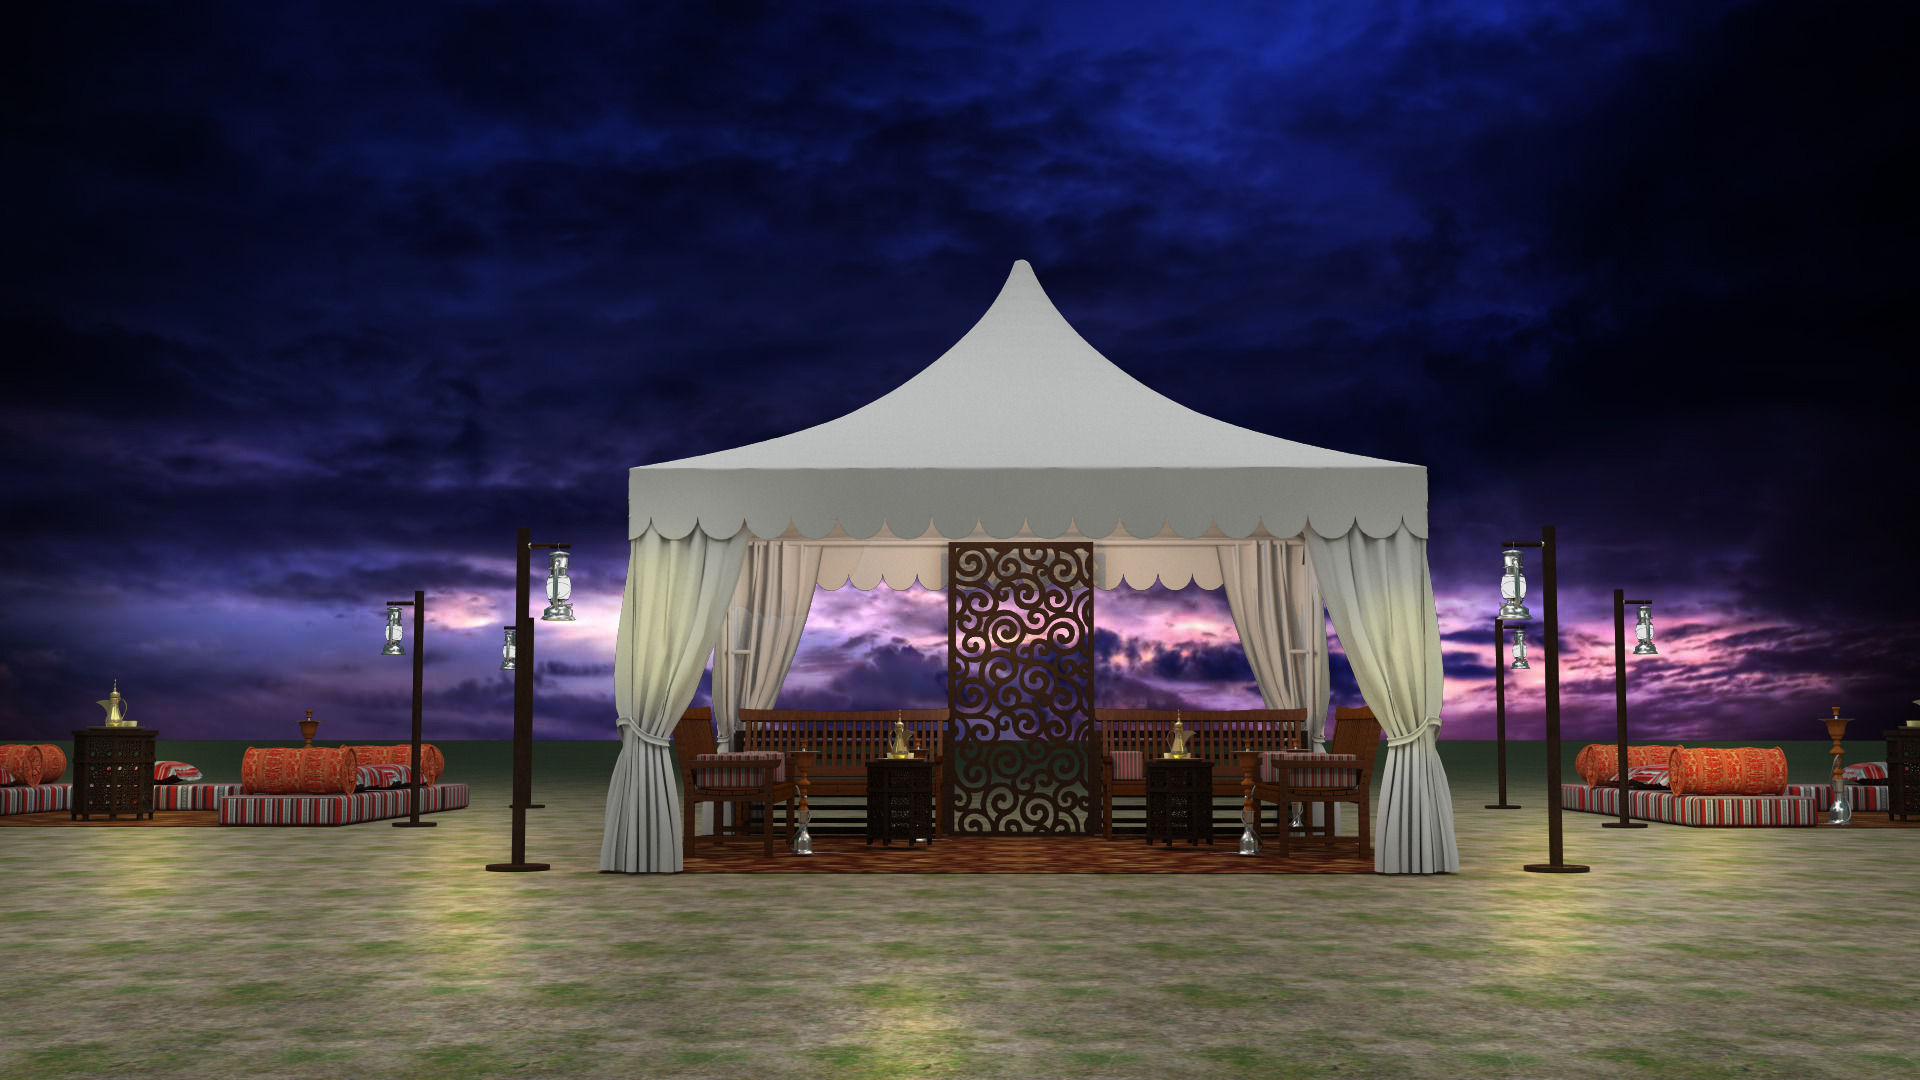 ... event tent arabic 3d model max obj 3ds fbx mtl ... & Event Tent arabic 3D model | CGTrader